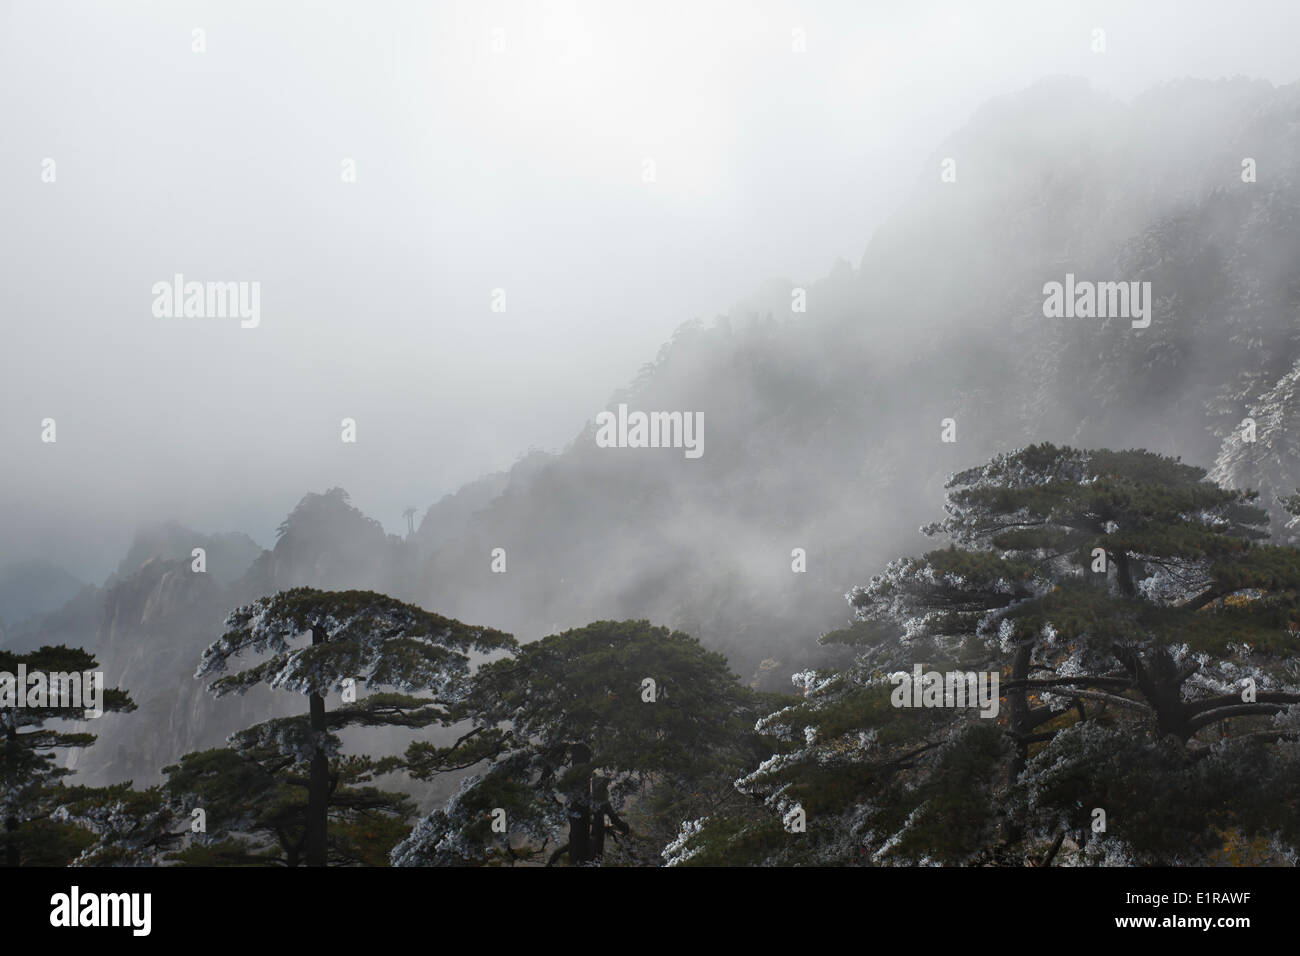 Huangshan frequent subject traditional Chinese paintings literature as well as modern photography Today it UNESCO World - Stock Image